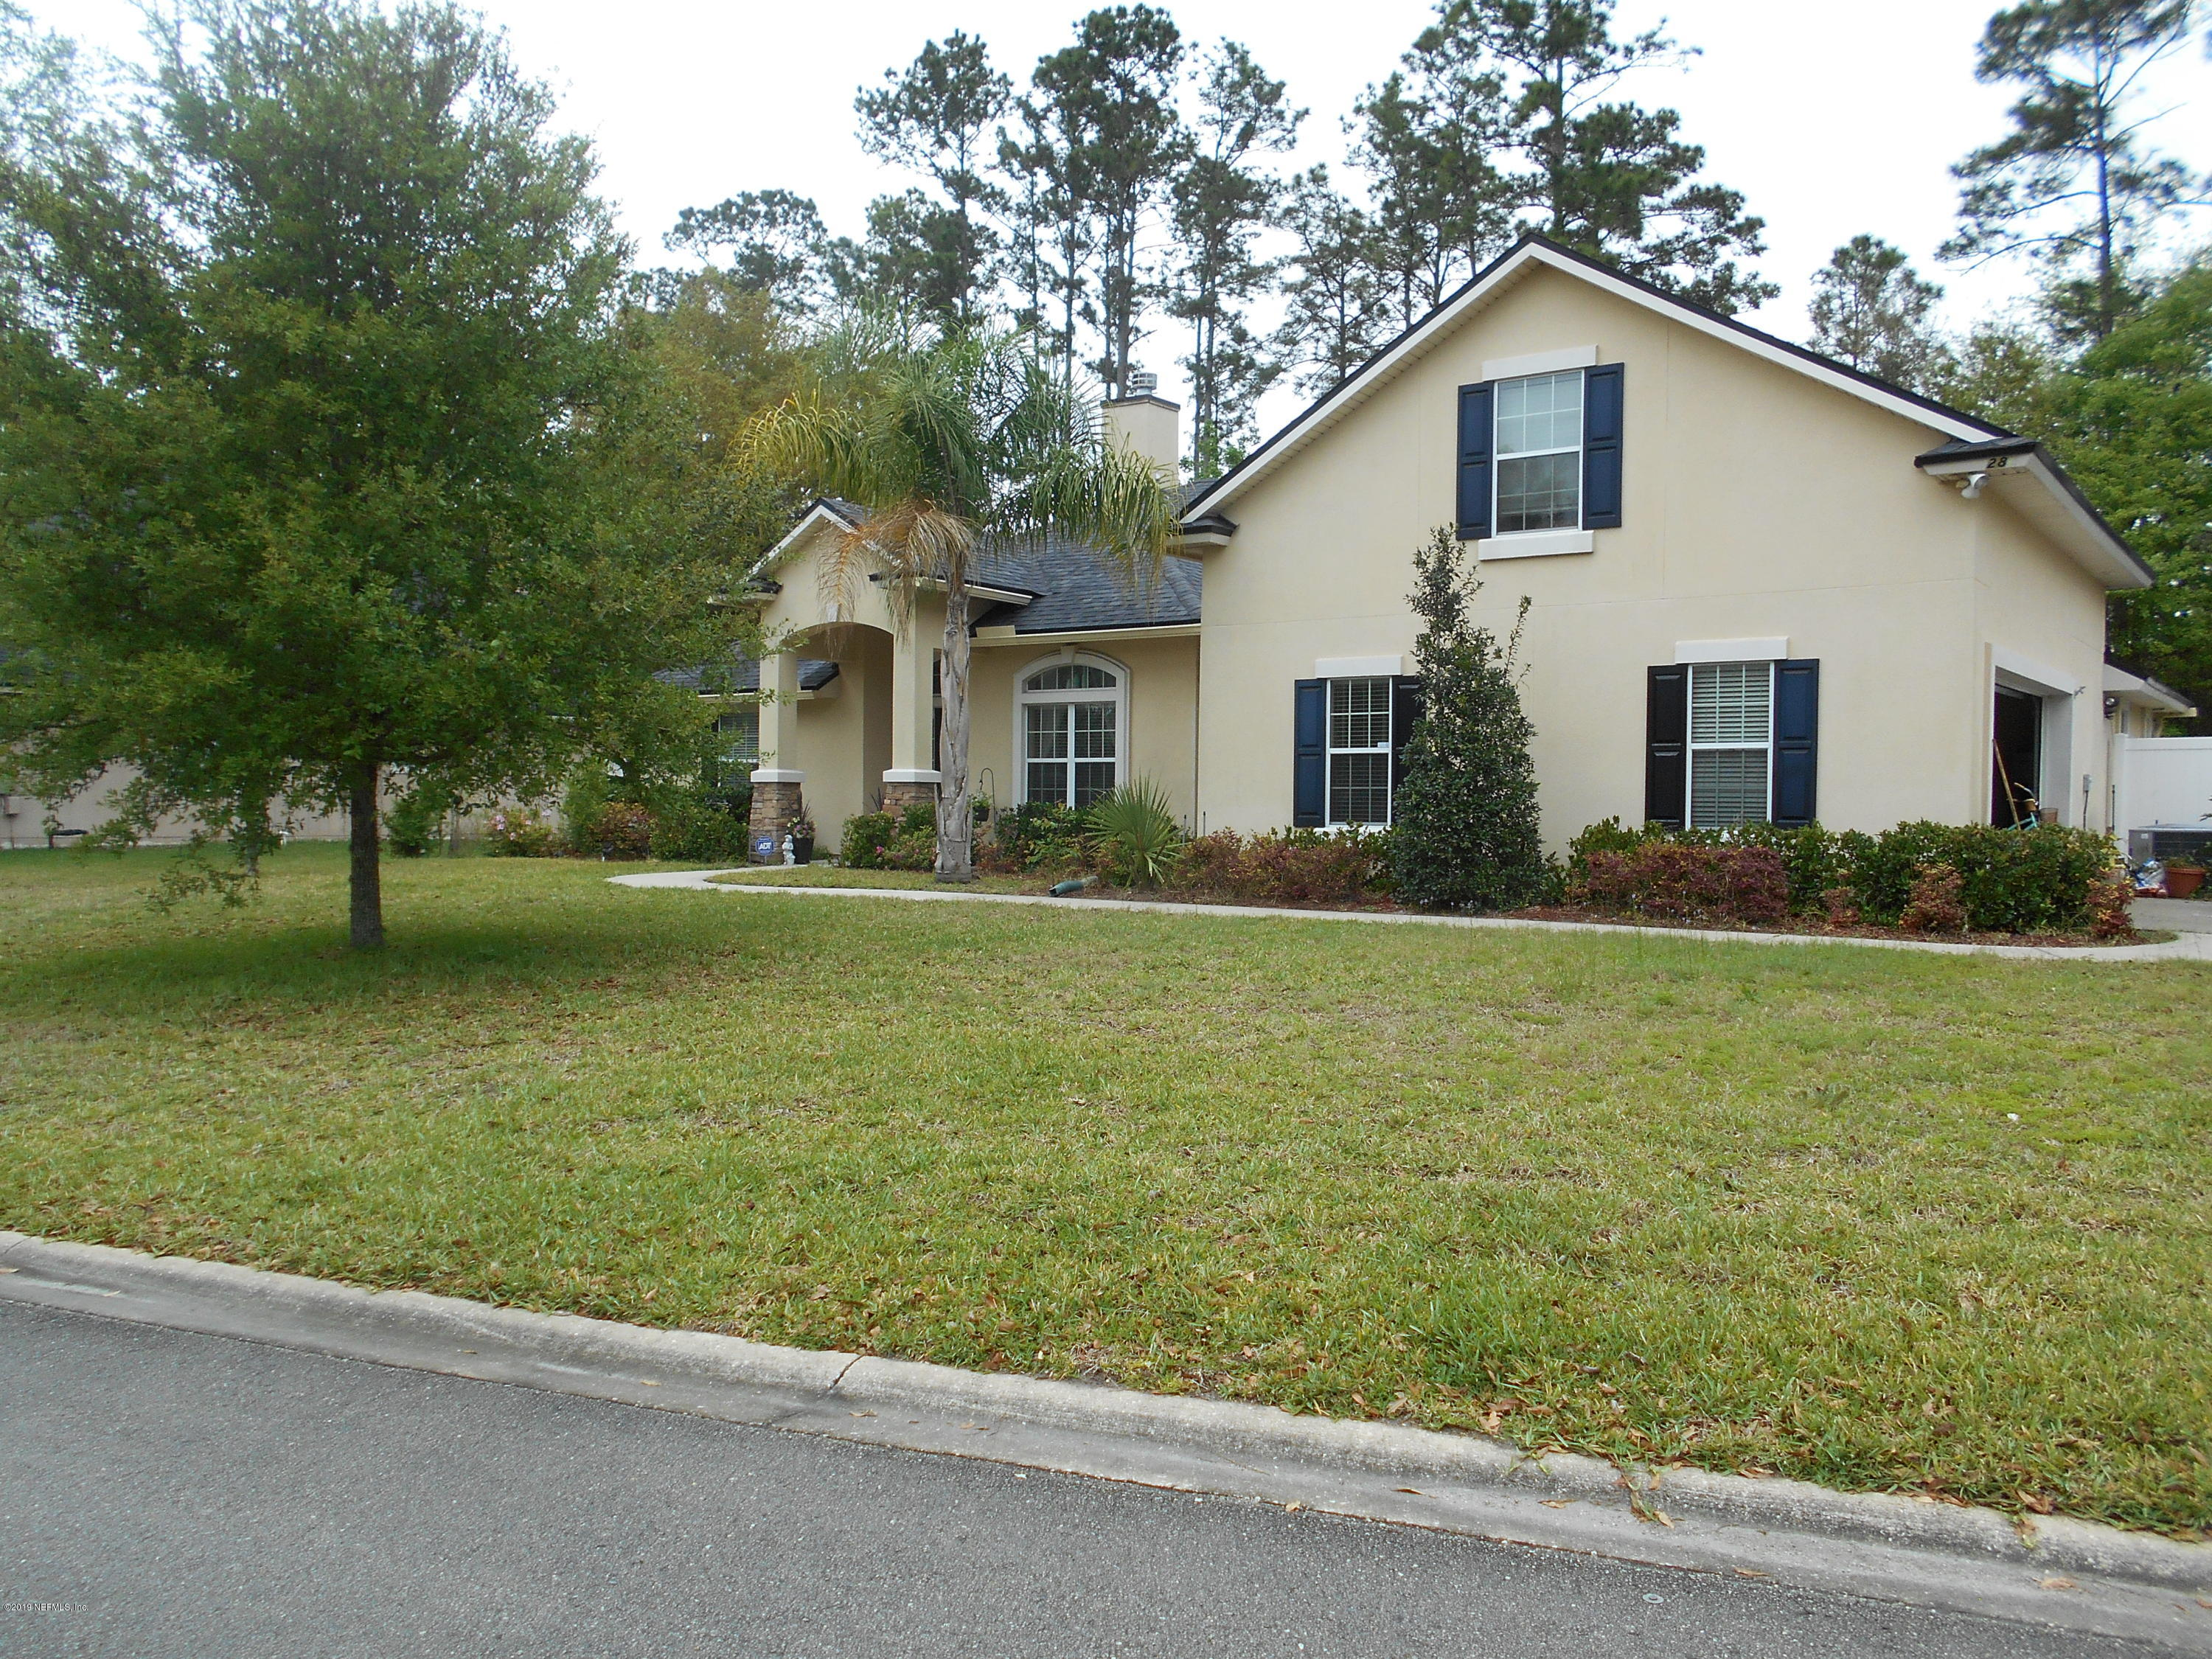 2853  PRATT PL, Julington Creek in ST. JOHNS County, FL 32259 Home for Sale